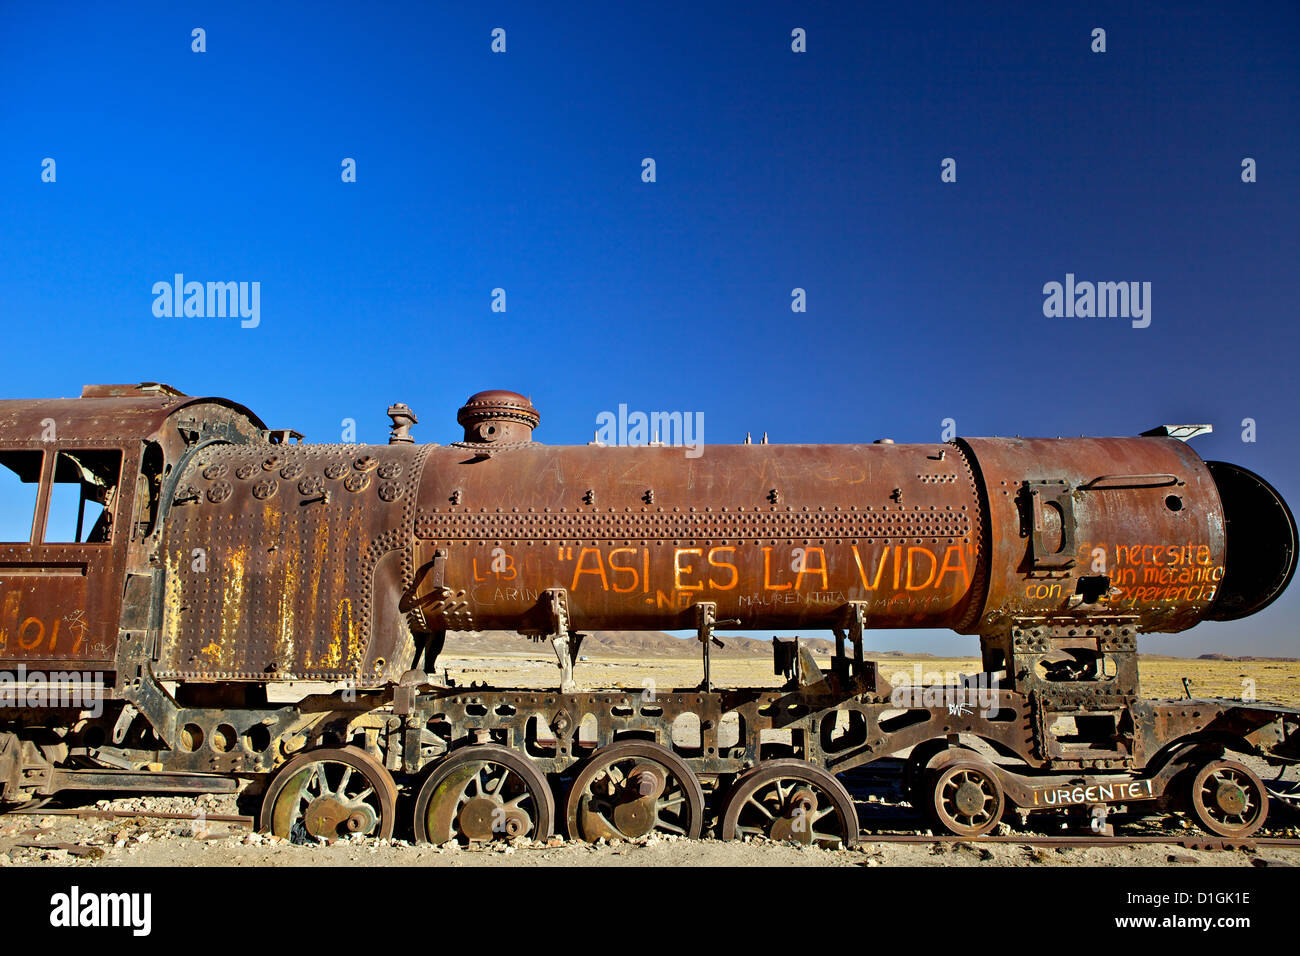 Rusting old steam locomotive at the Train cemetery (train graveyard), Uyuni, Southwest, Bolivia, South America - Stock Image